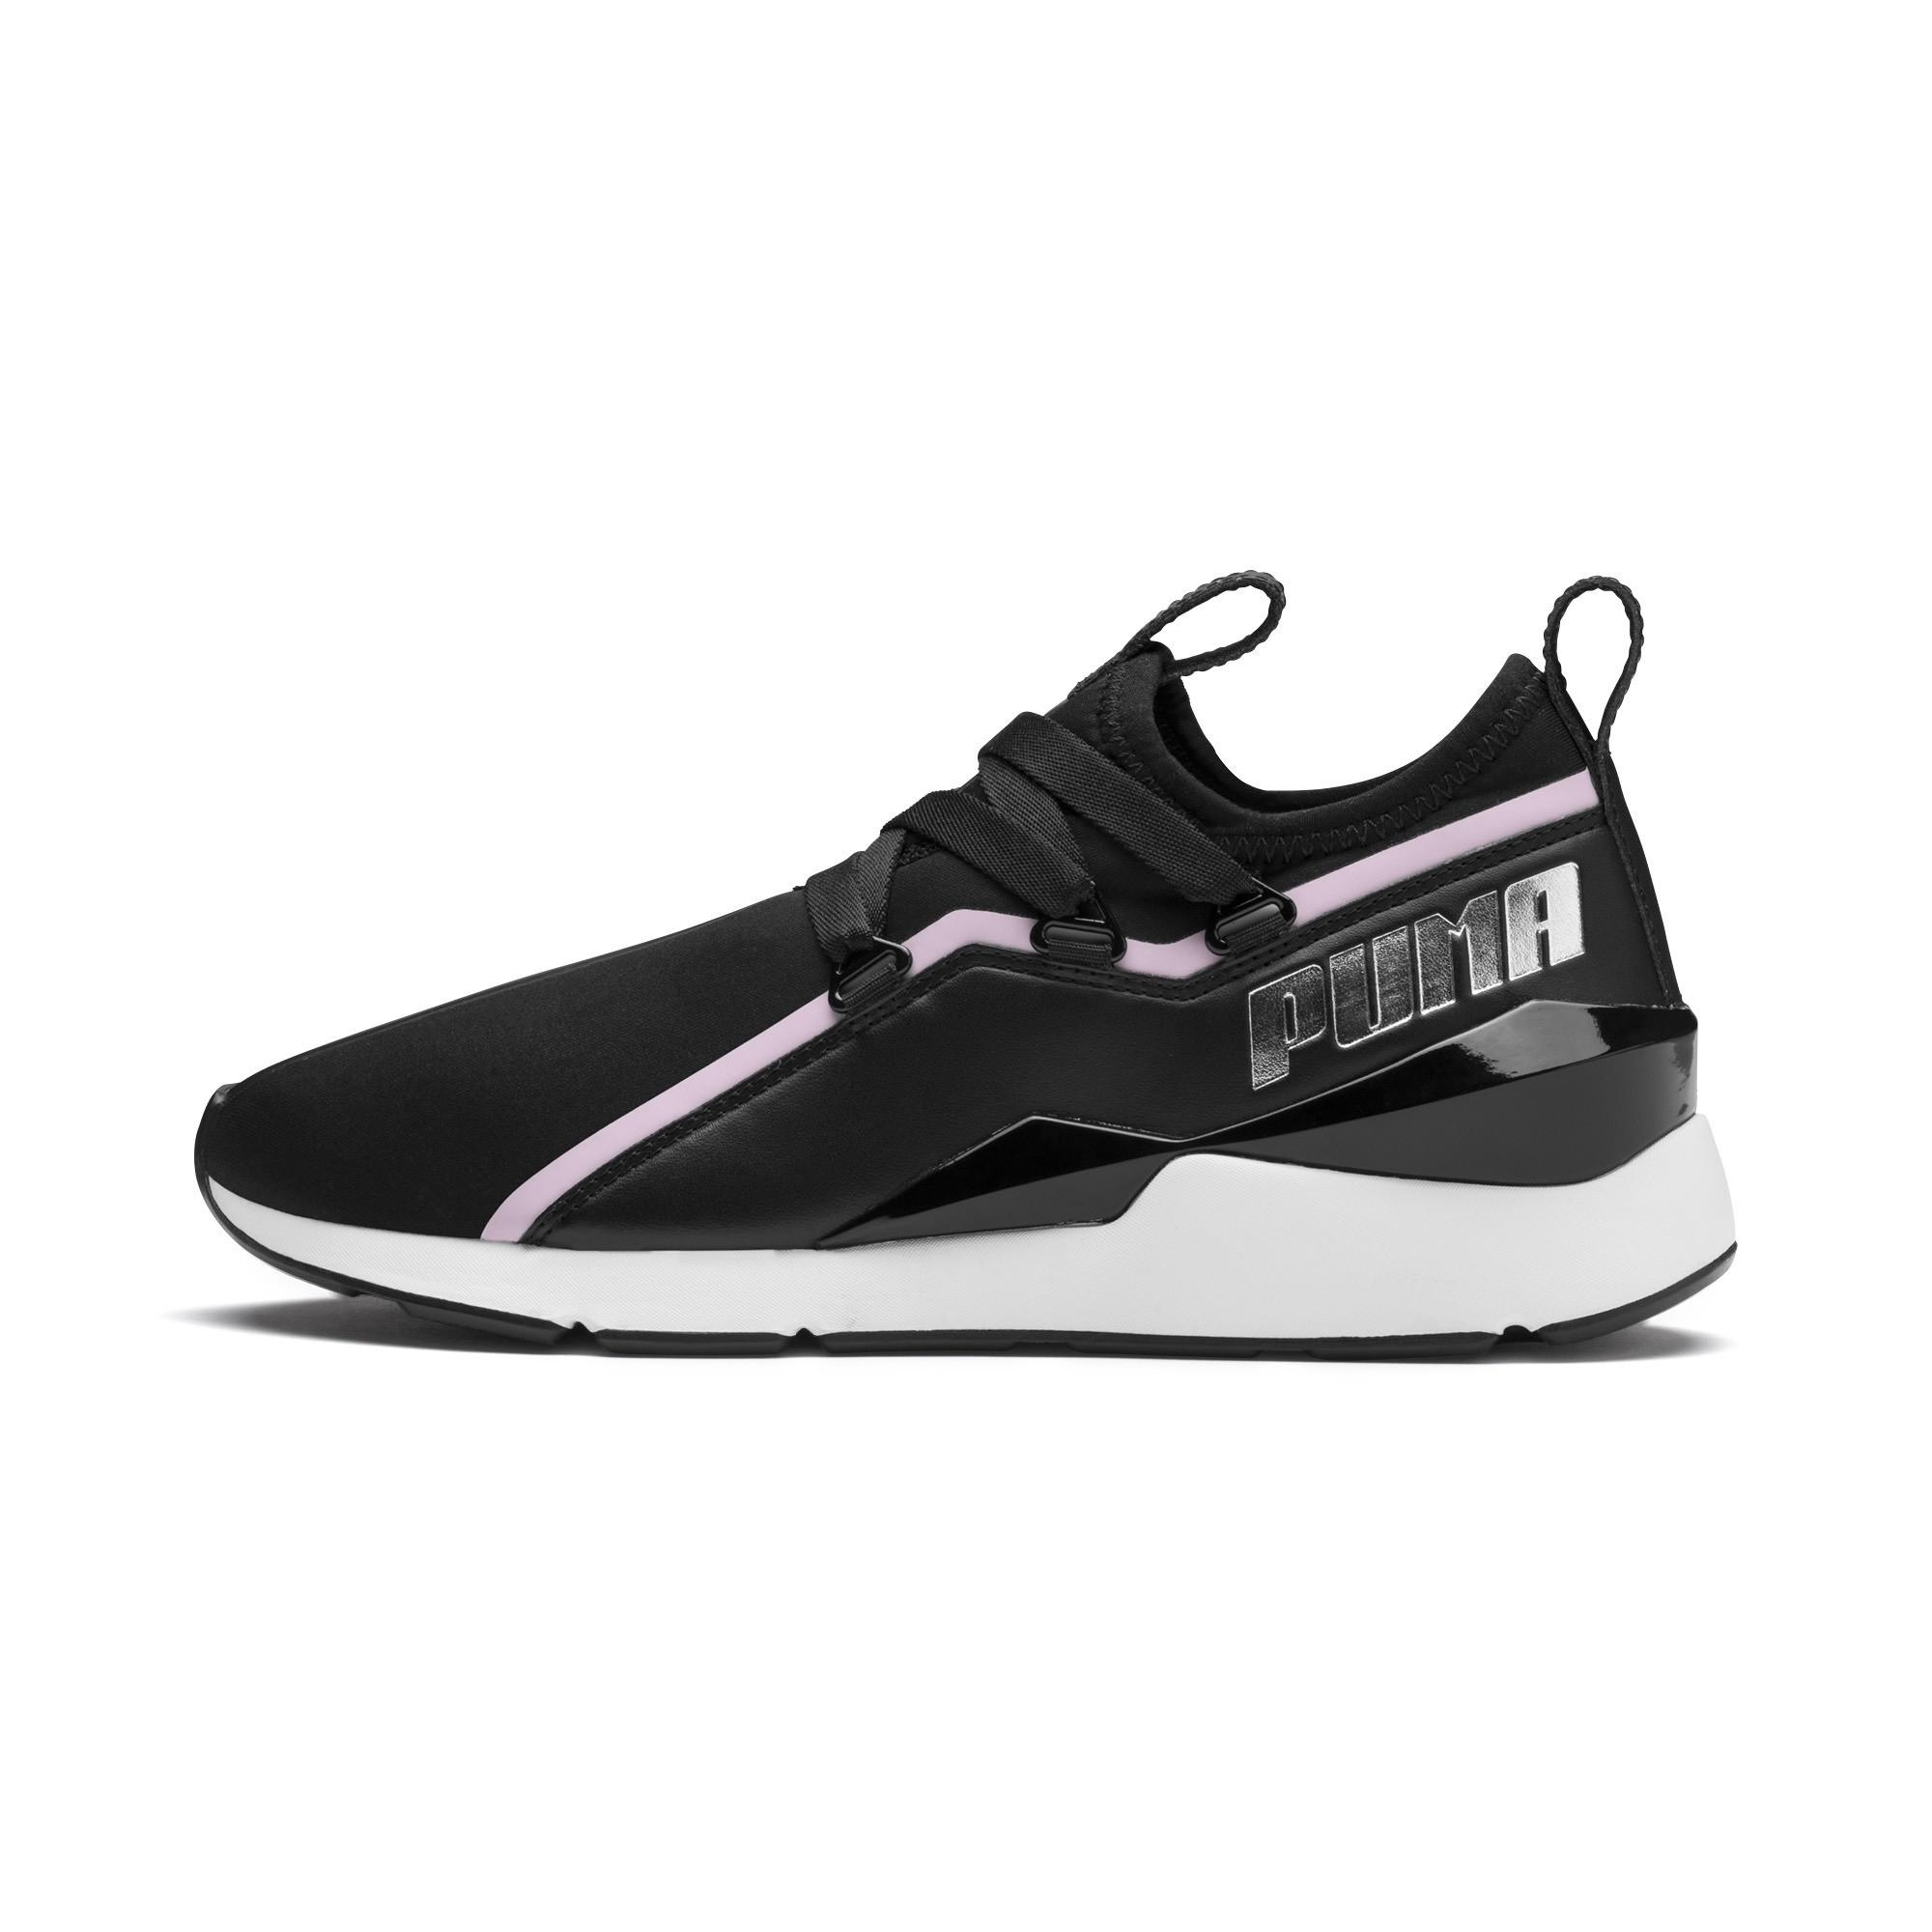 low priced befee 7a5ca PUMA Muse 2 Trailblazer Women's Sneakers 369211